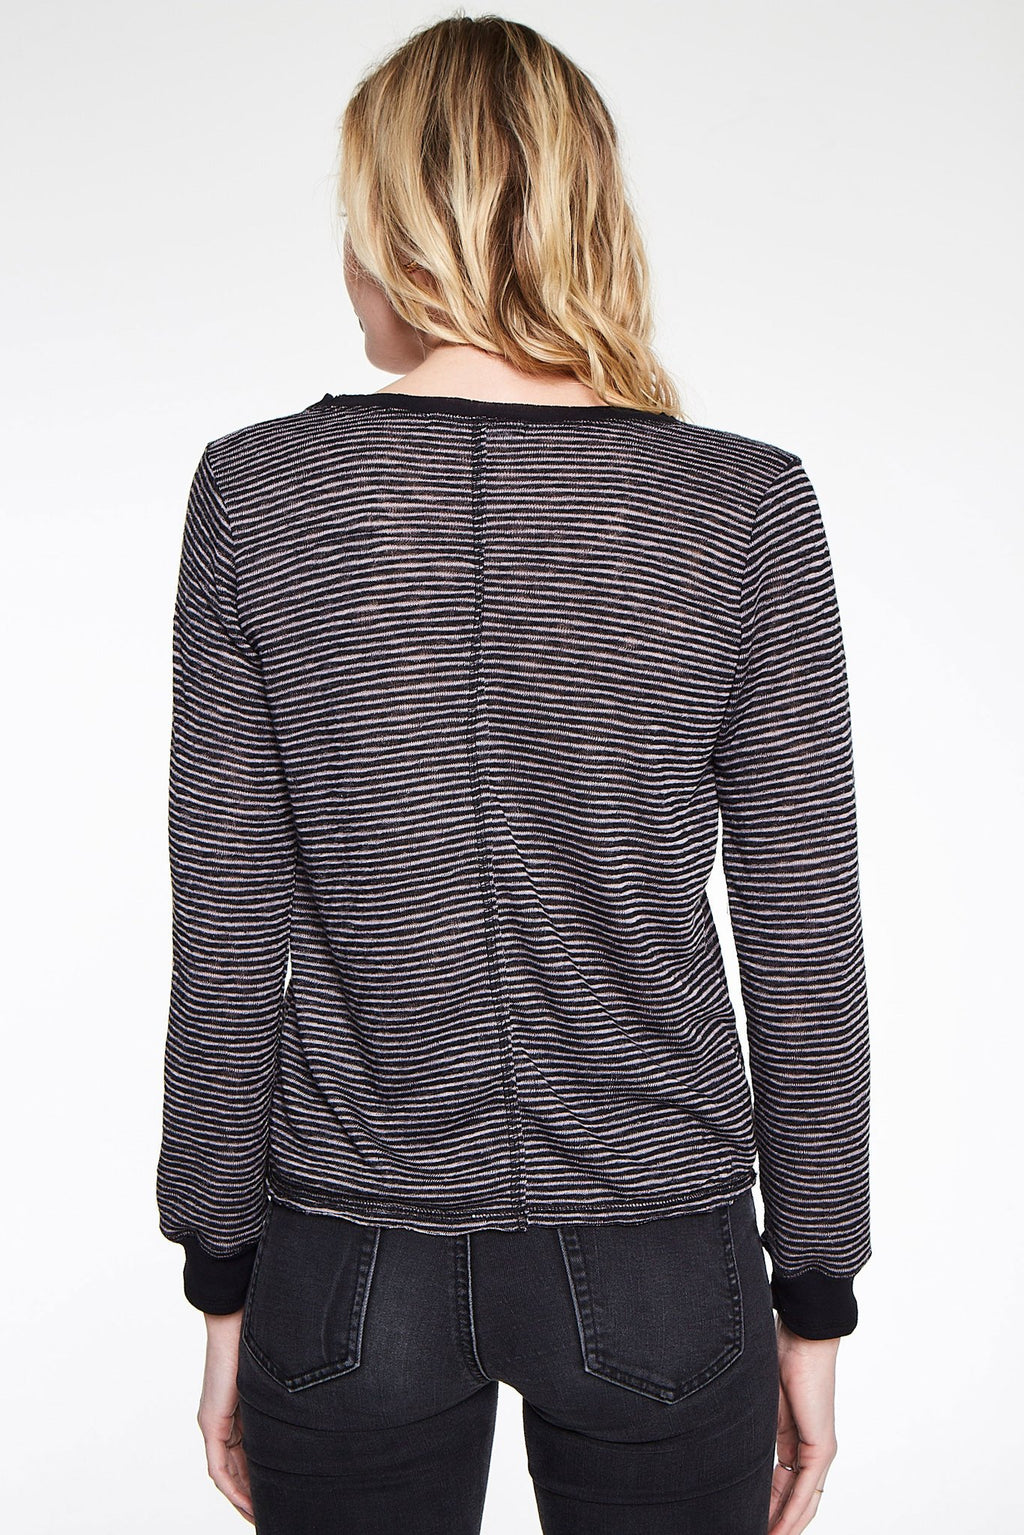 Deeply V Striped Long Sleeve